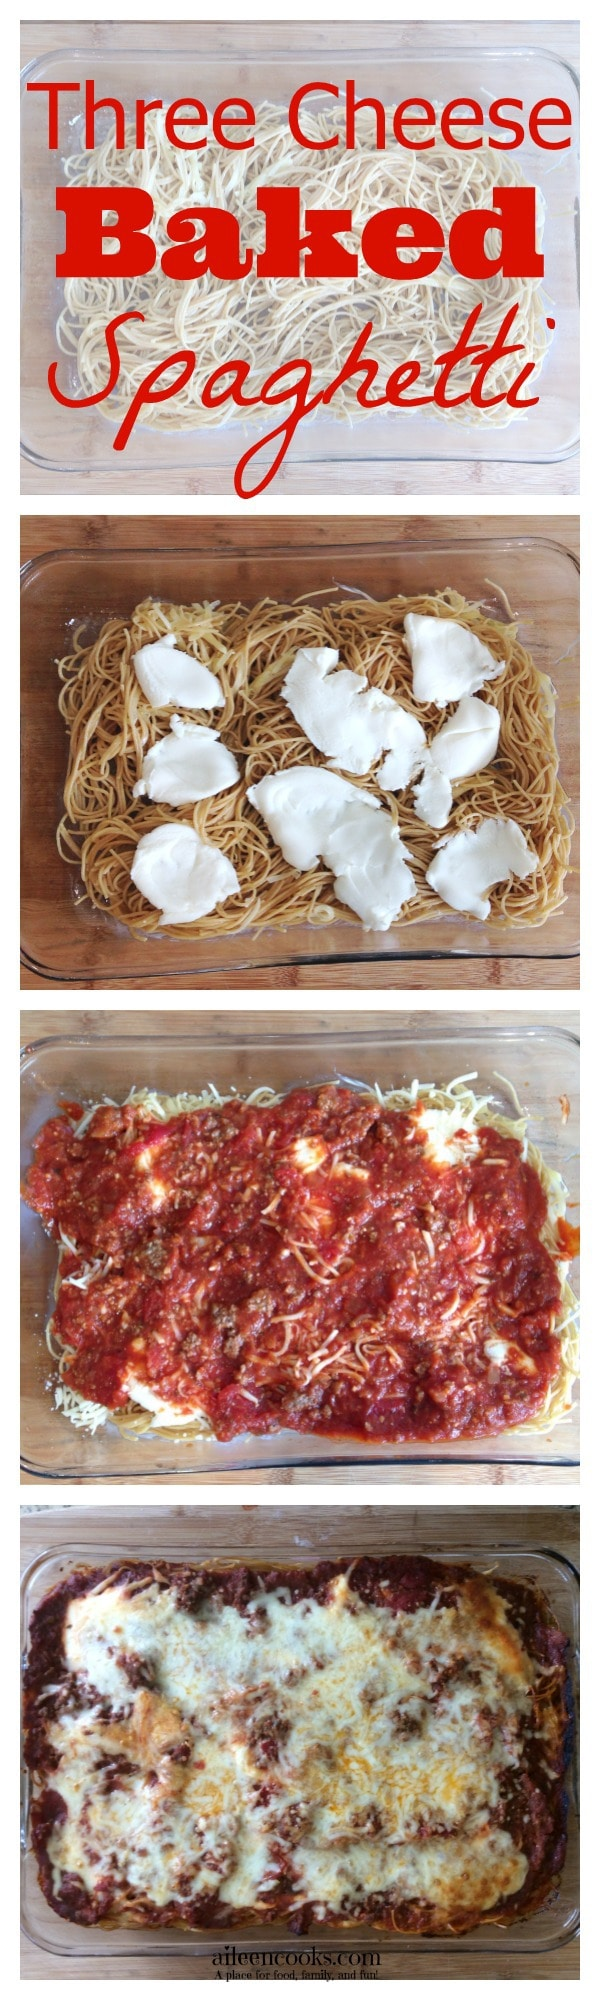 Three Cheese Baked Spaghetti 1